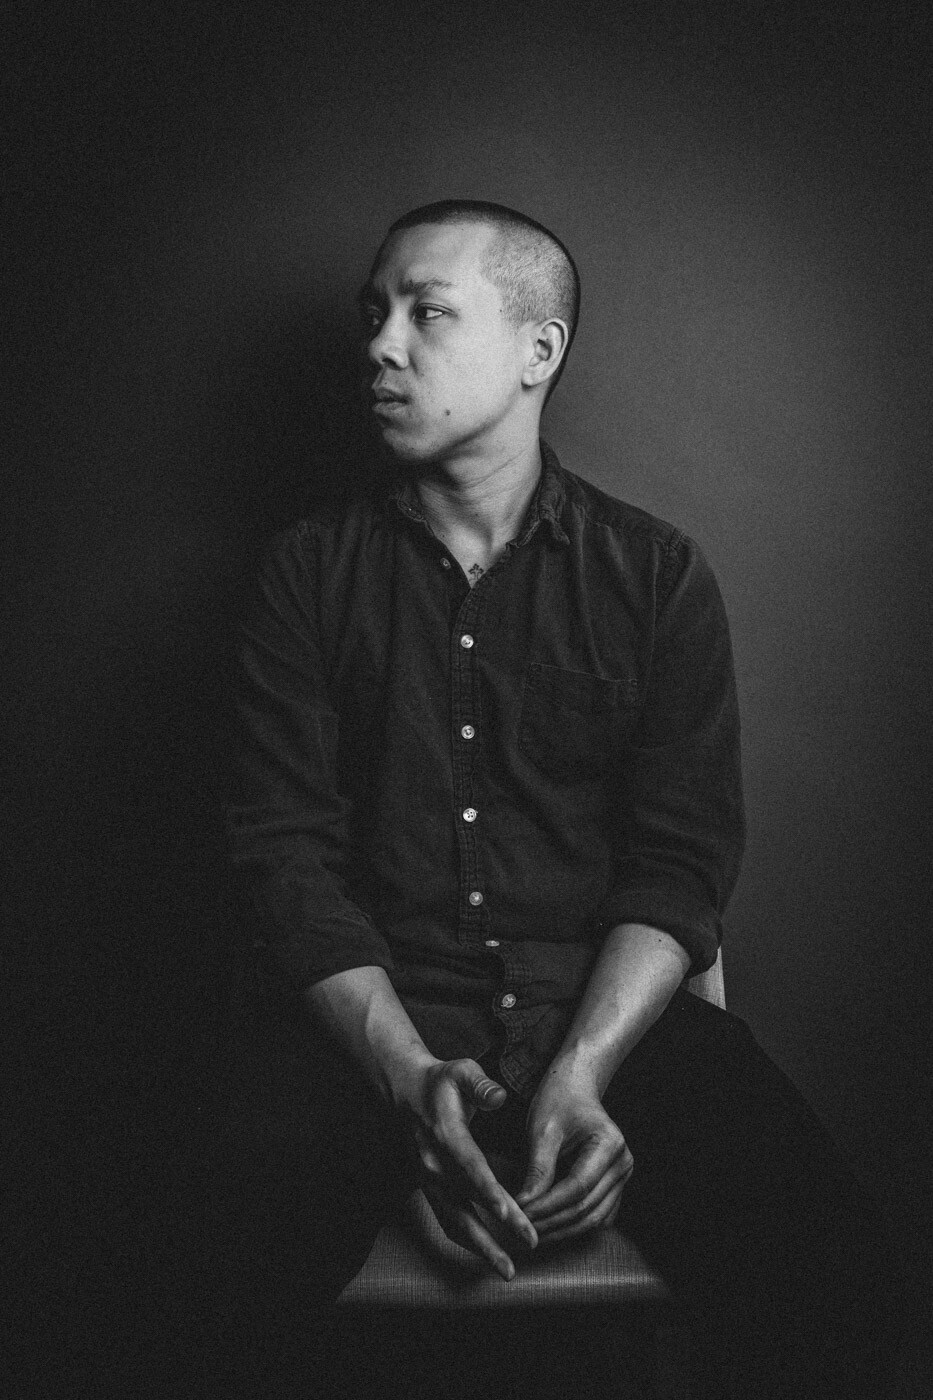 A black and white portrait photo of Chef Jon Yao of Kato taken from the knees up. He wears a dark-colored button-up shirt and looks to the side.